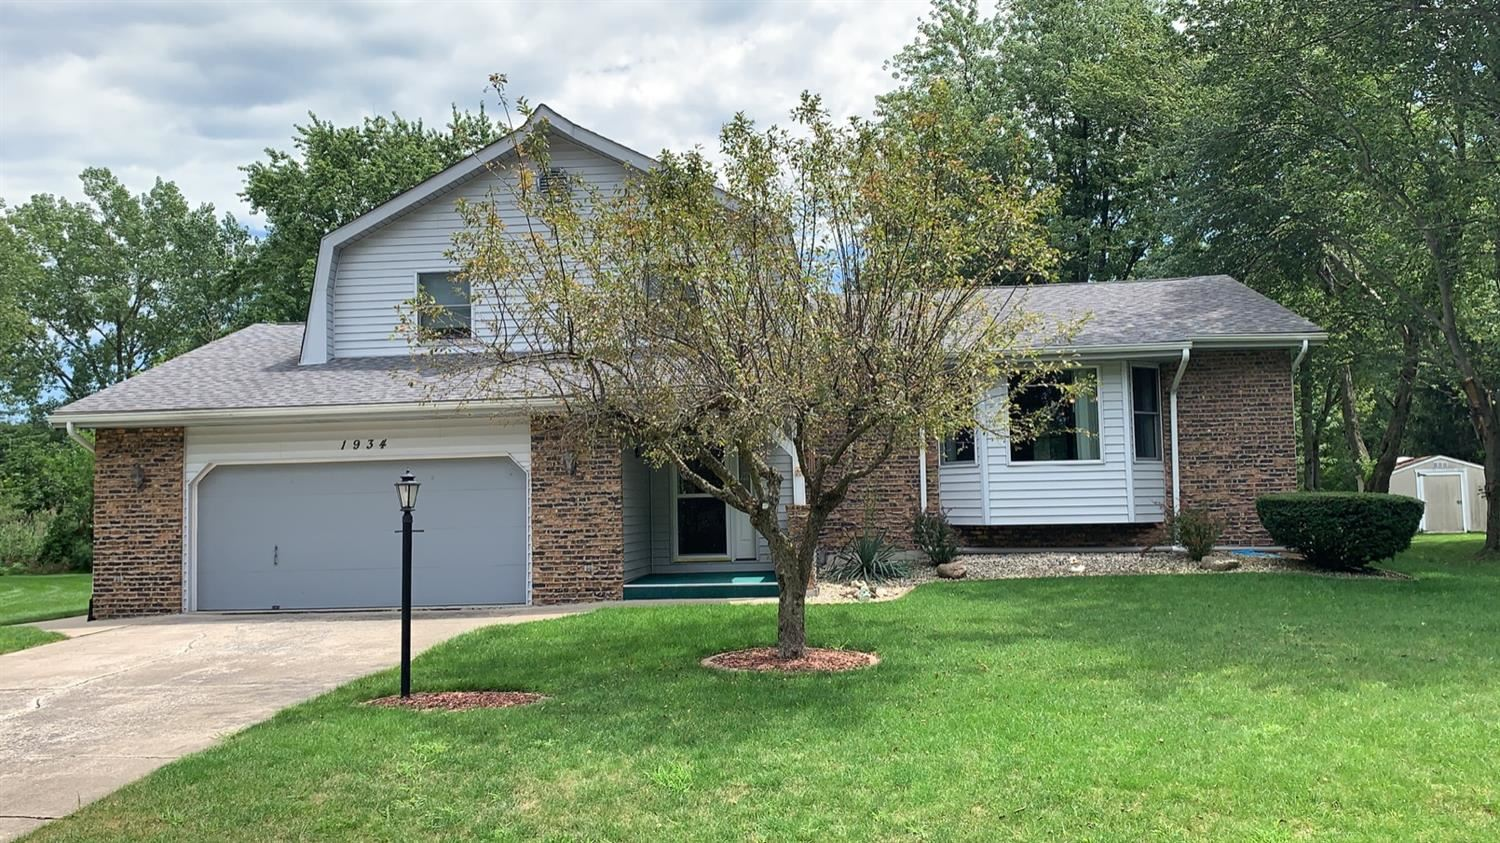 1934 Loganberry Lane, Crown Point, IN 46307 - #: 477837